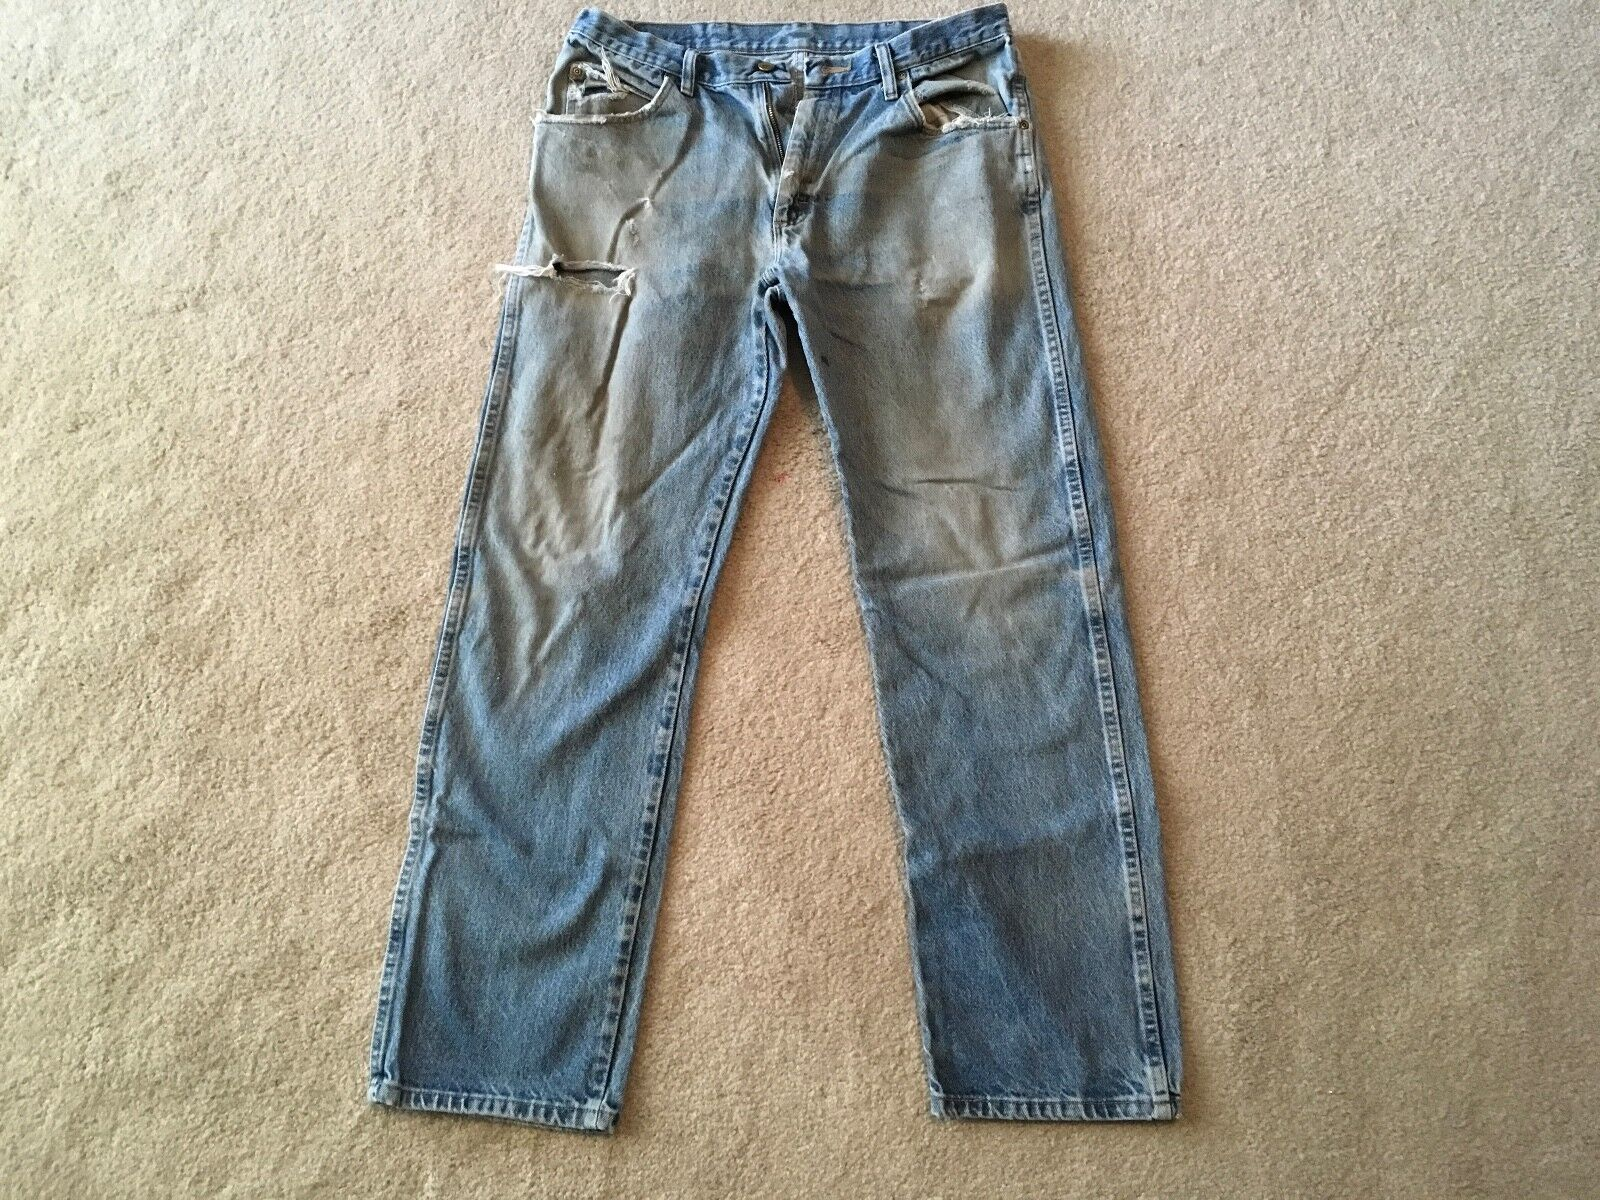 Naturally weathered dirty stained reg fit denim jeans 35X32.........Nature Made